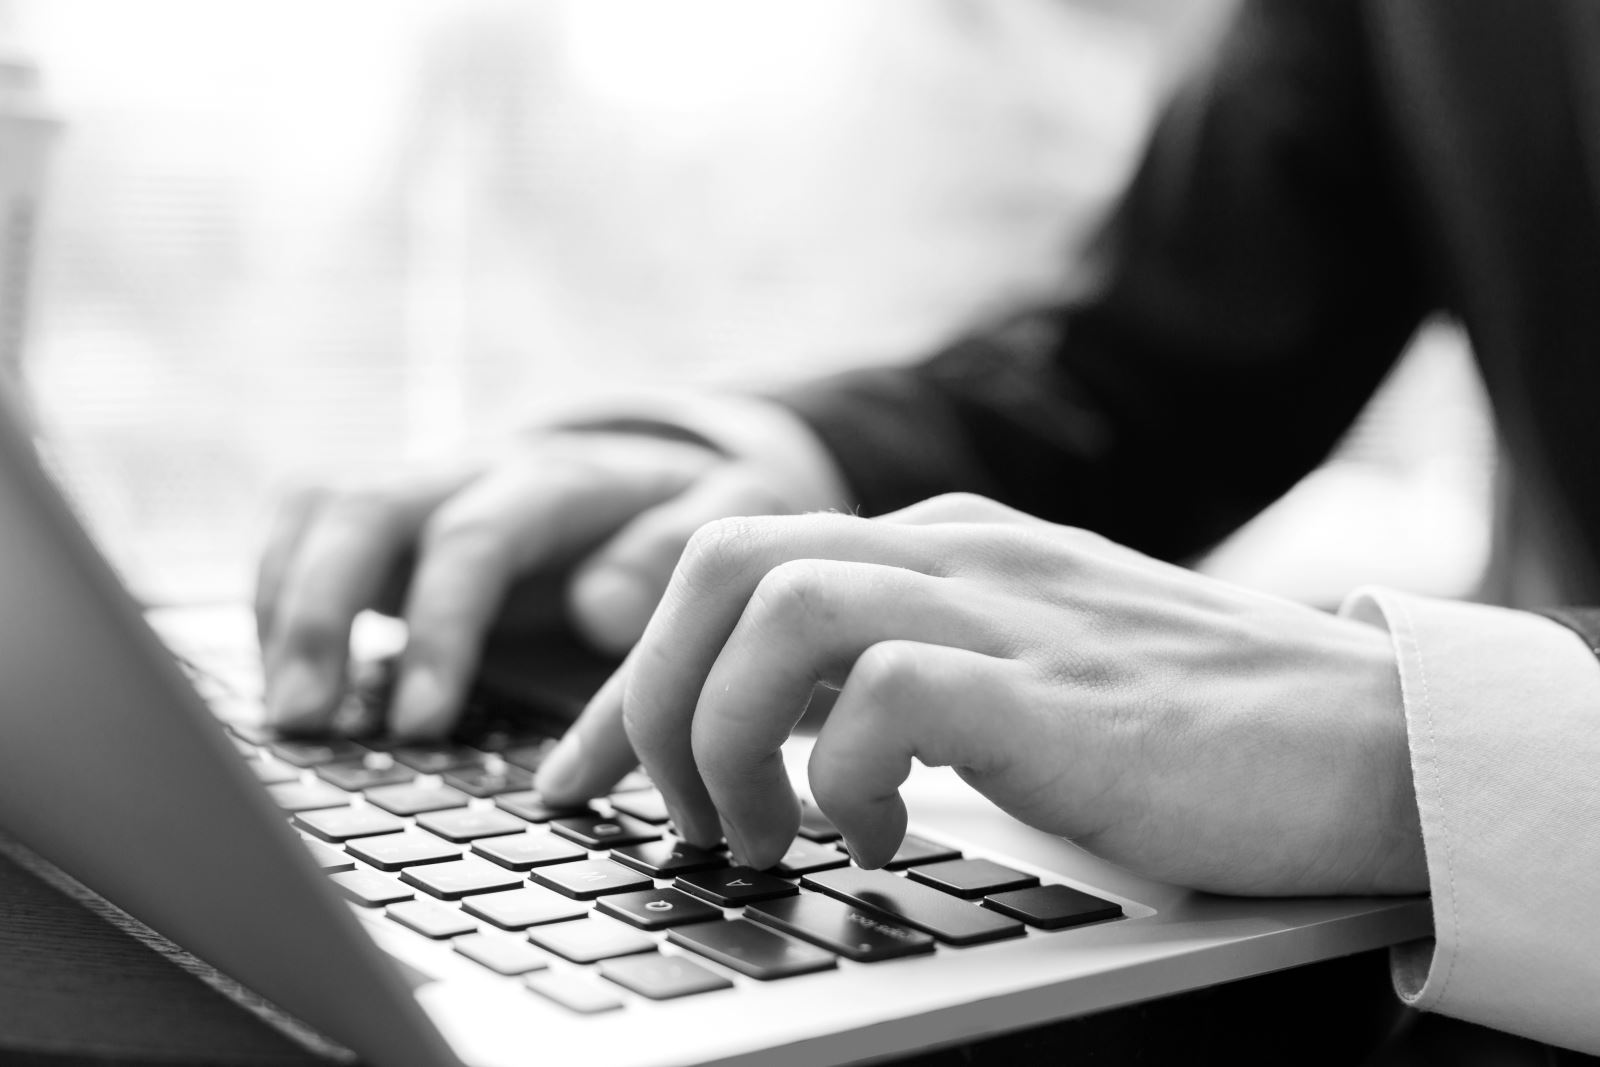 Black and white image of a man typing on a laptop